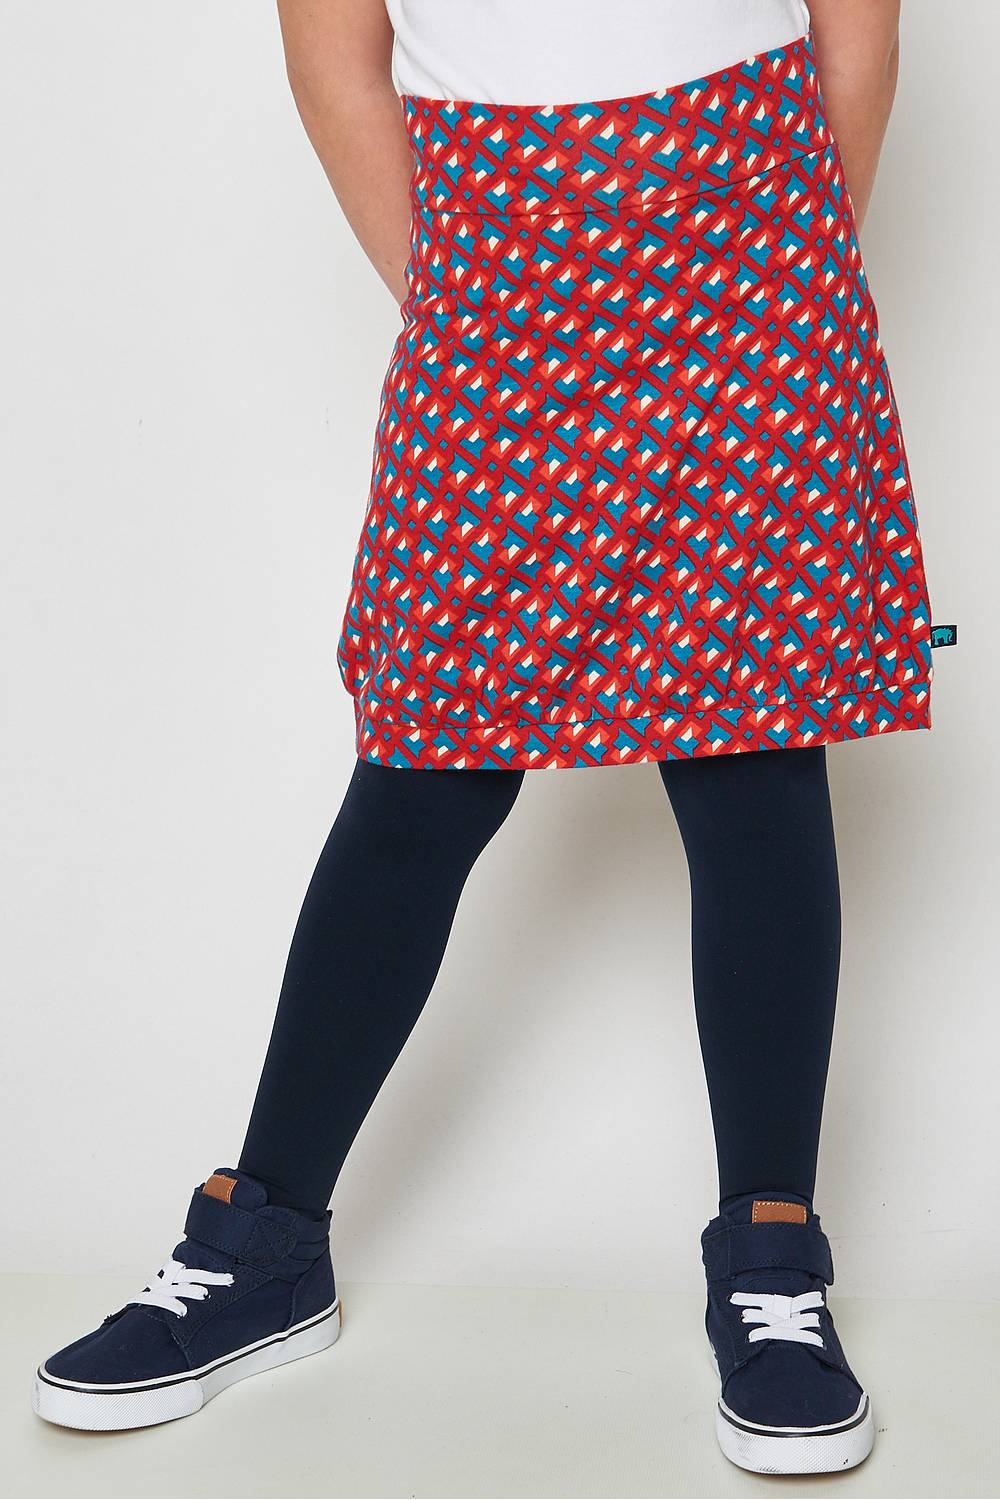 Jersey skirt Chamukuy red